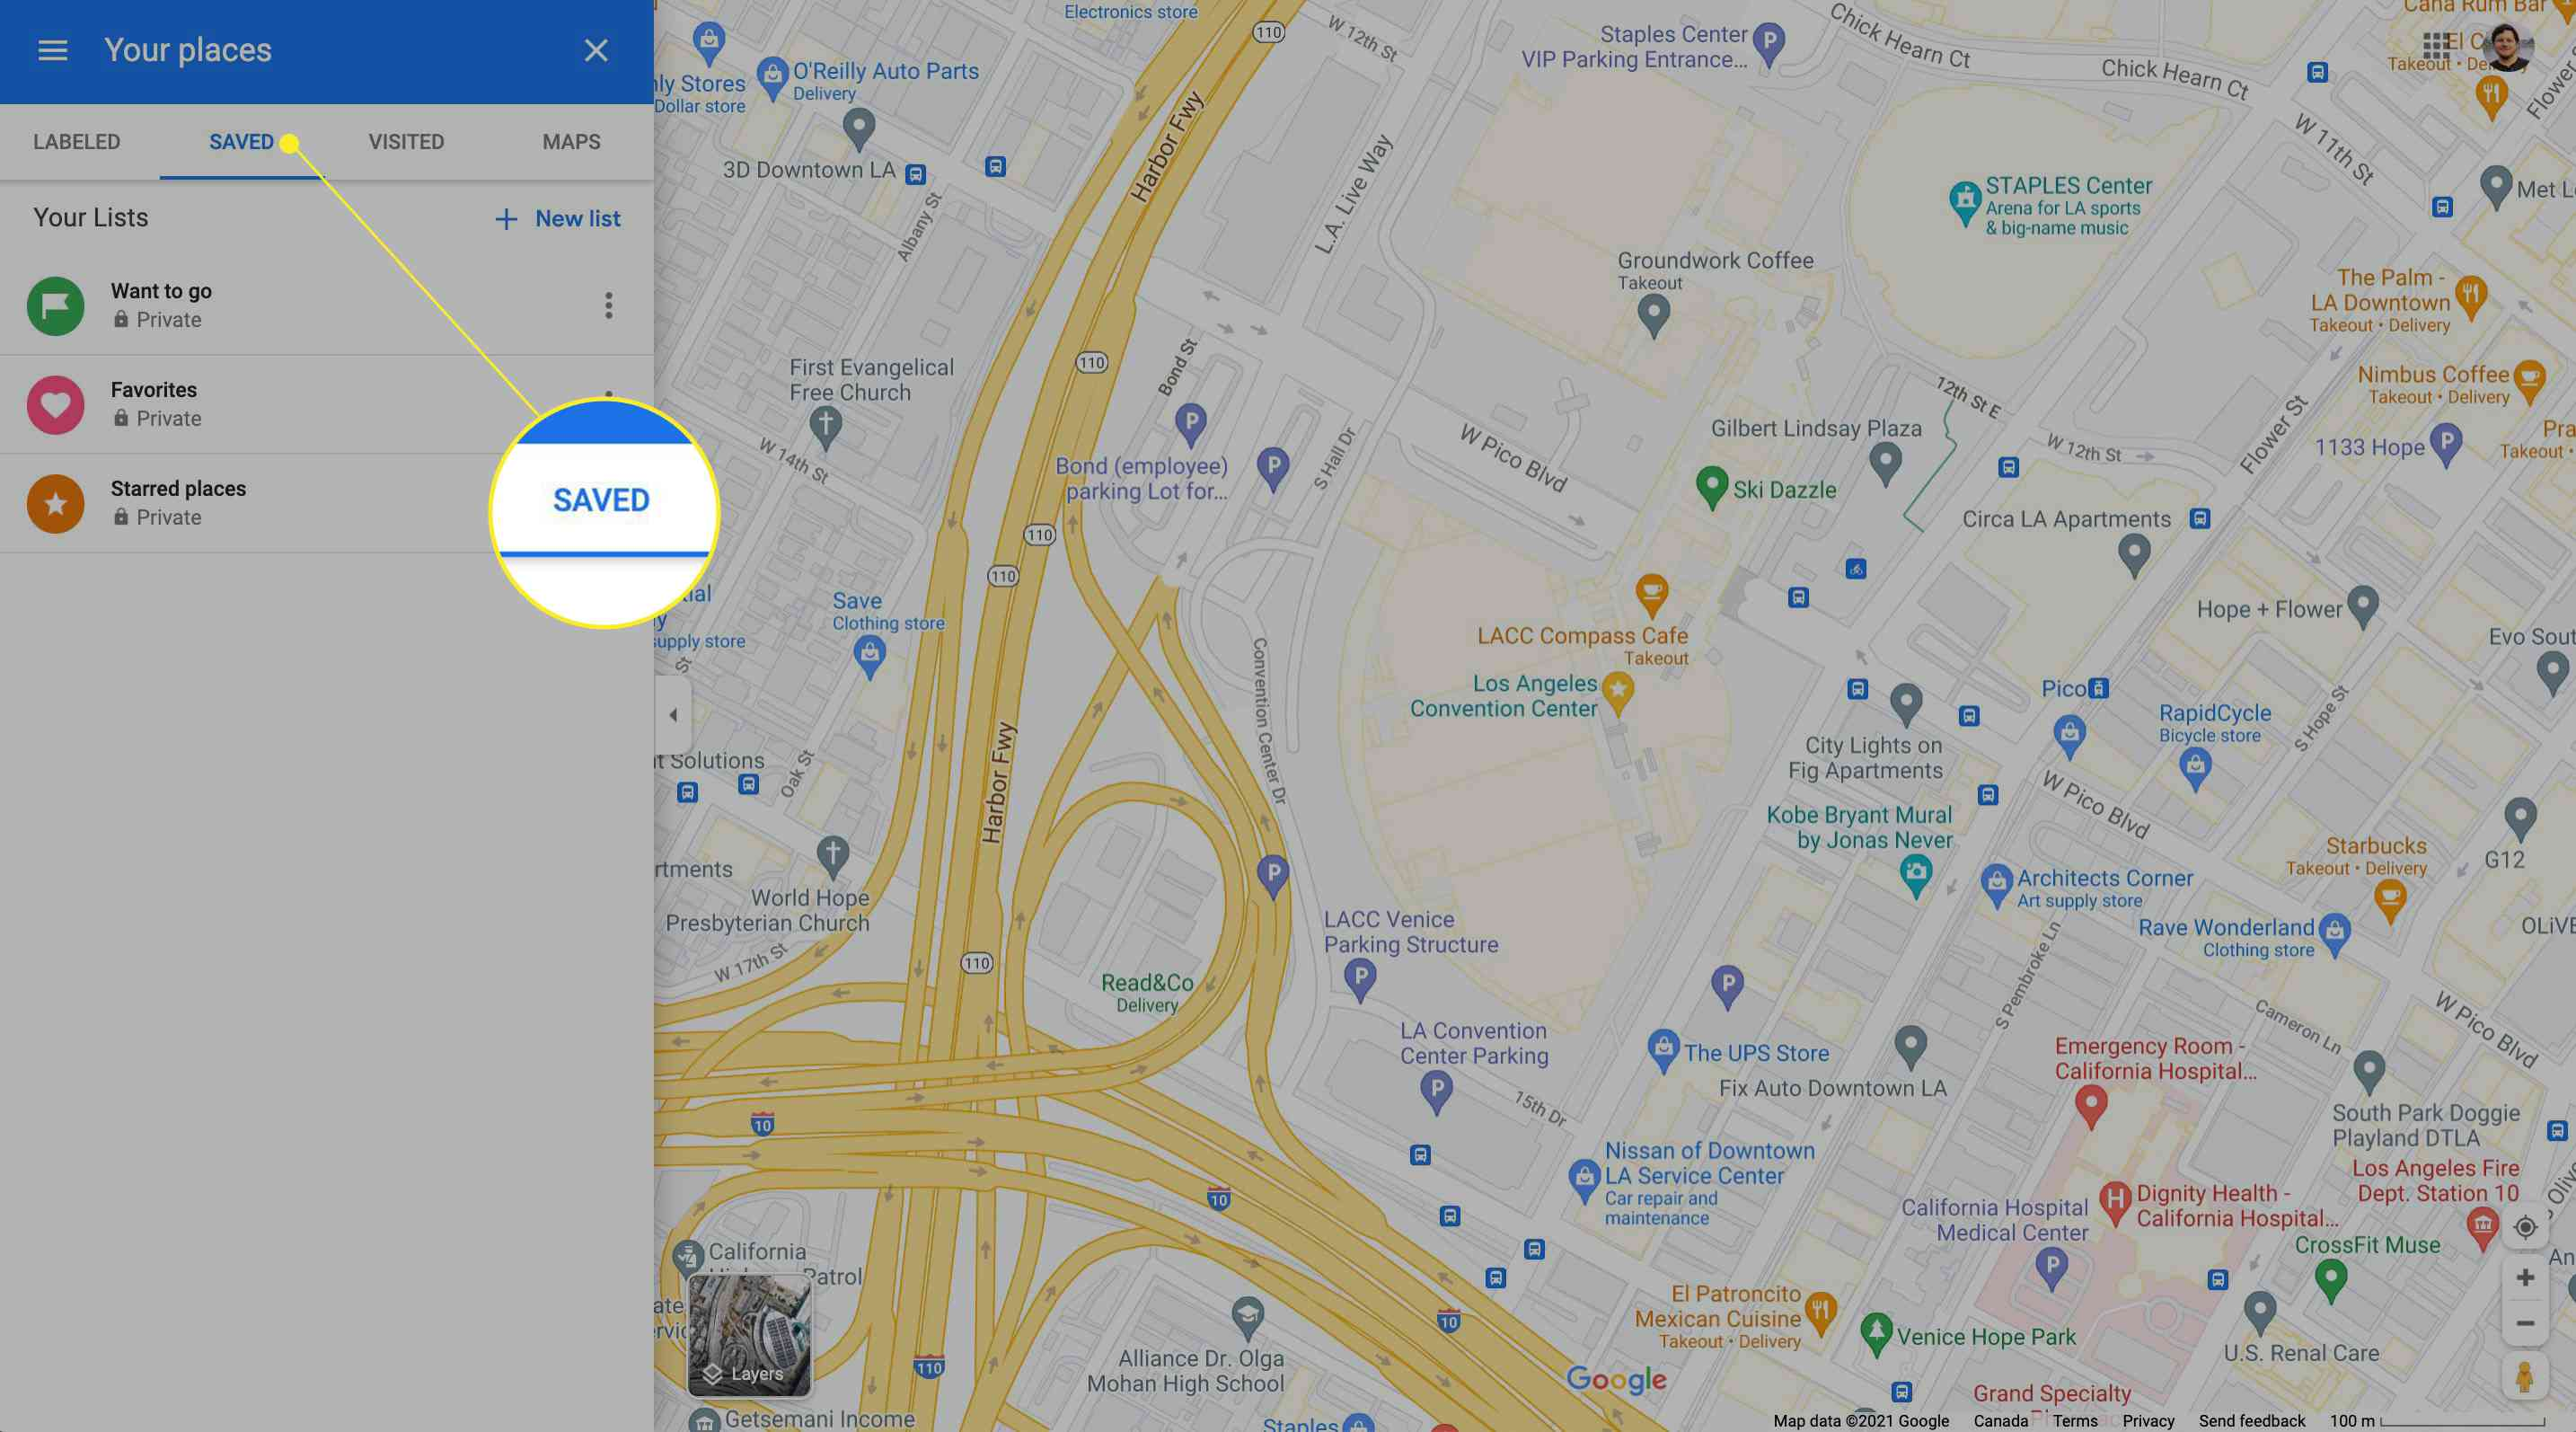 Accessing saved locations on Google Maps for desktop with Saved highlighted